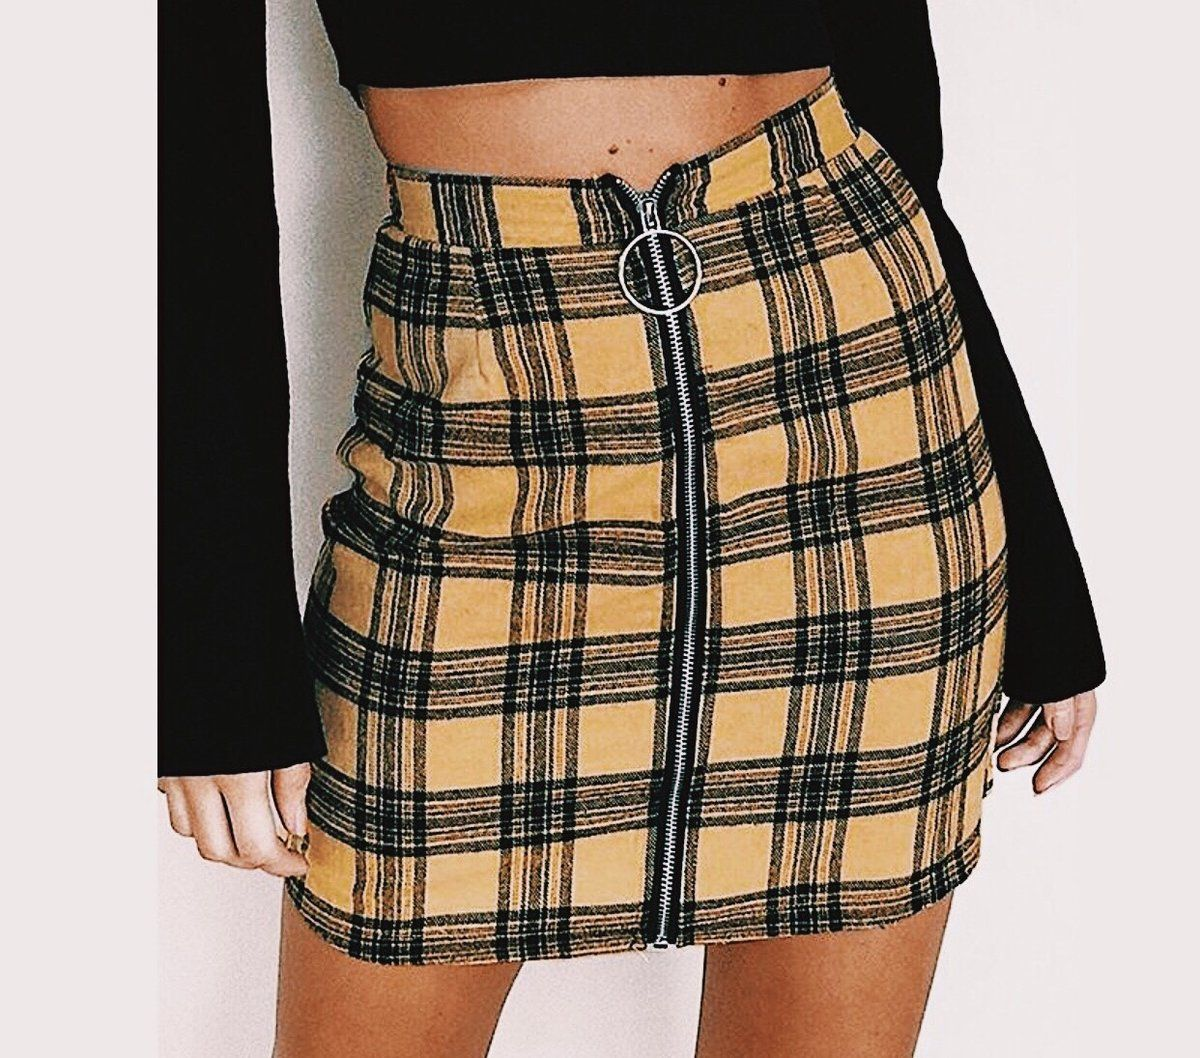 f8a5ac1f37 THE OCTOBER PLAID SKIRT | Might purchase | Mini skirts, Plaid skirts ...